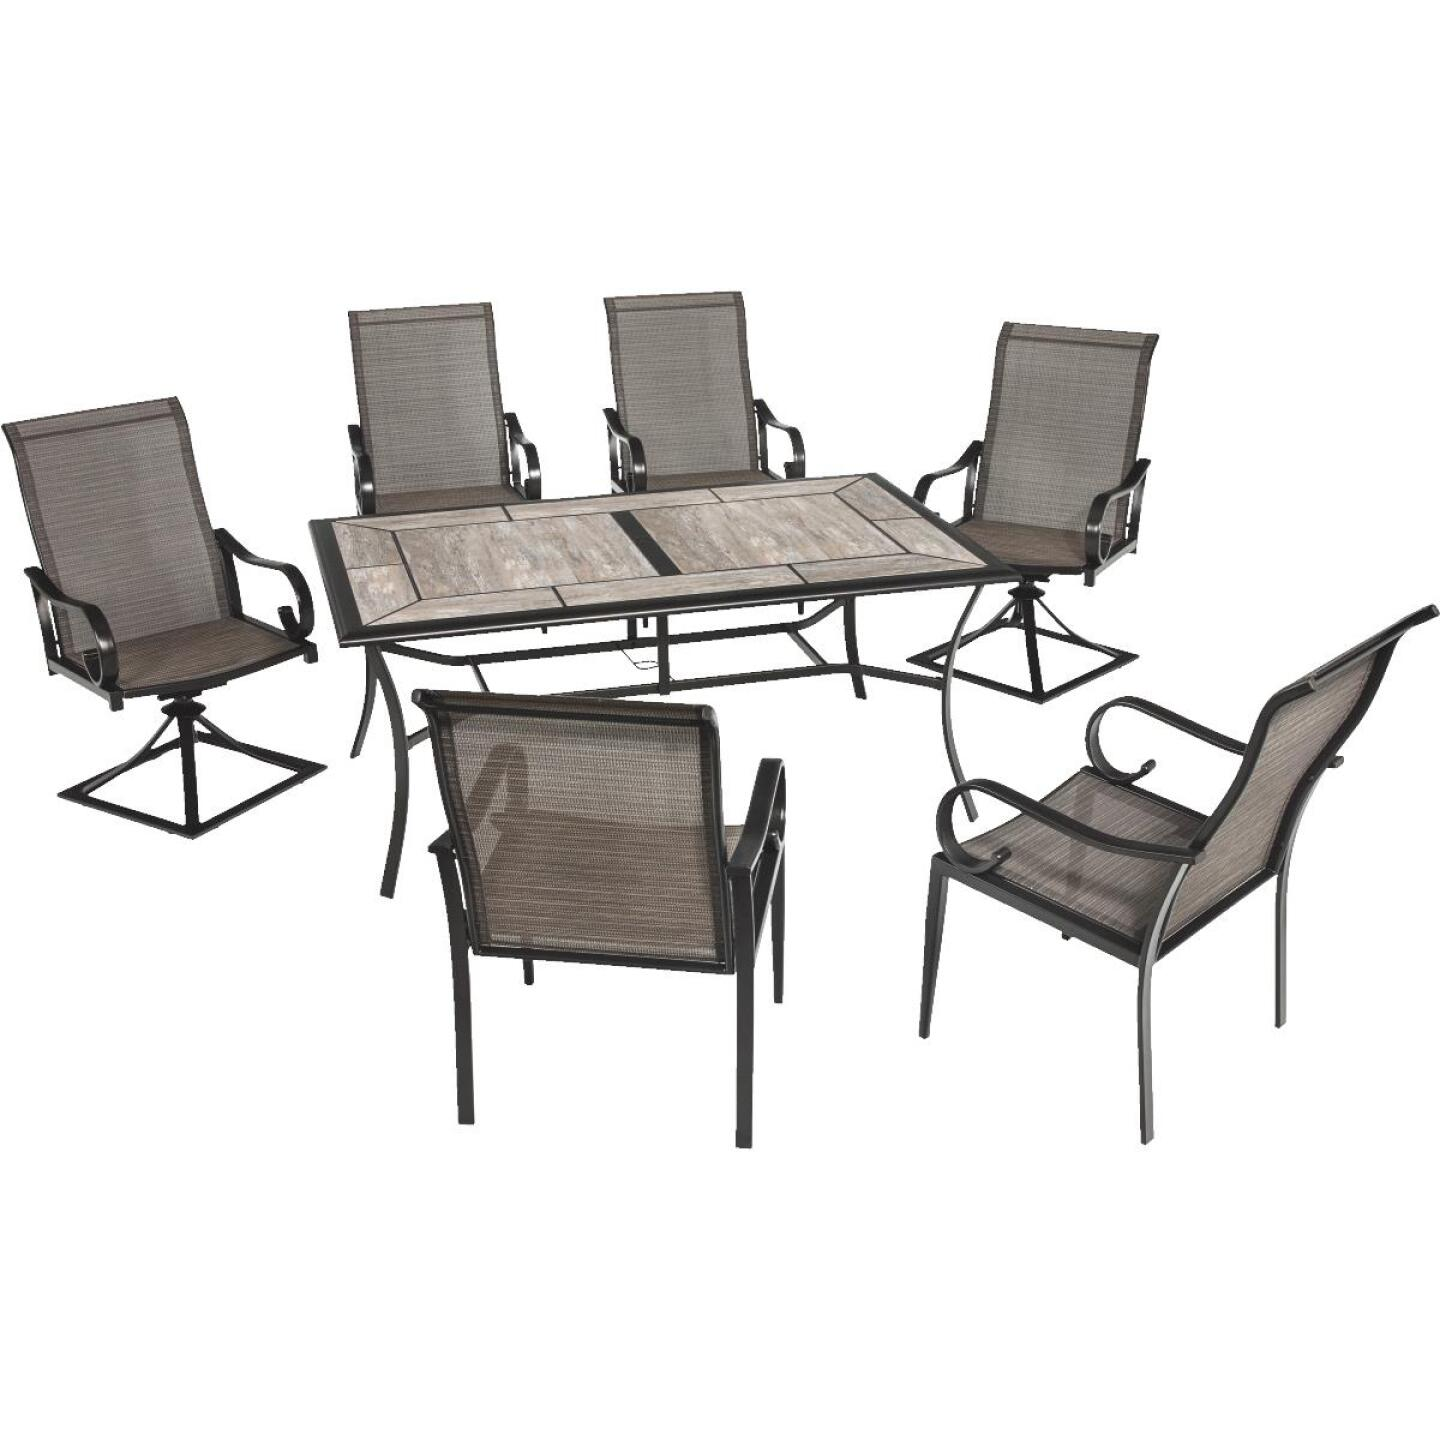 Outdoor Expressions Berkshire 7-Piece Dining Set Image 69